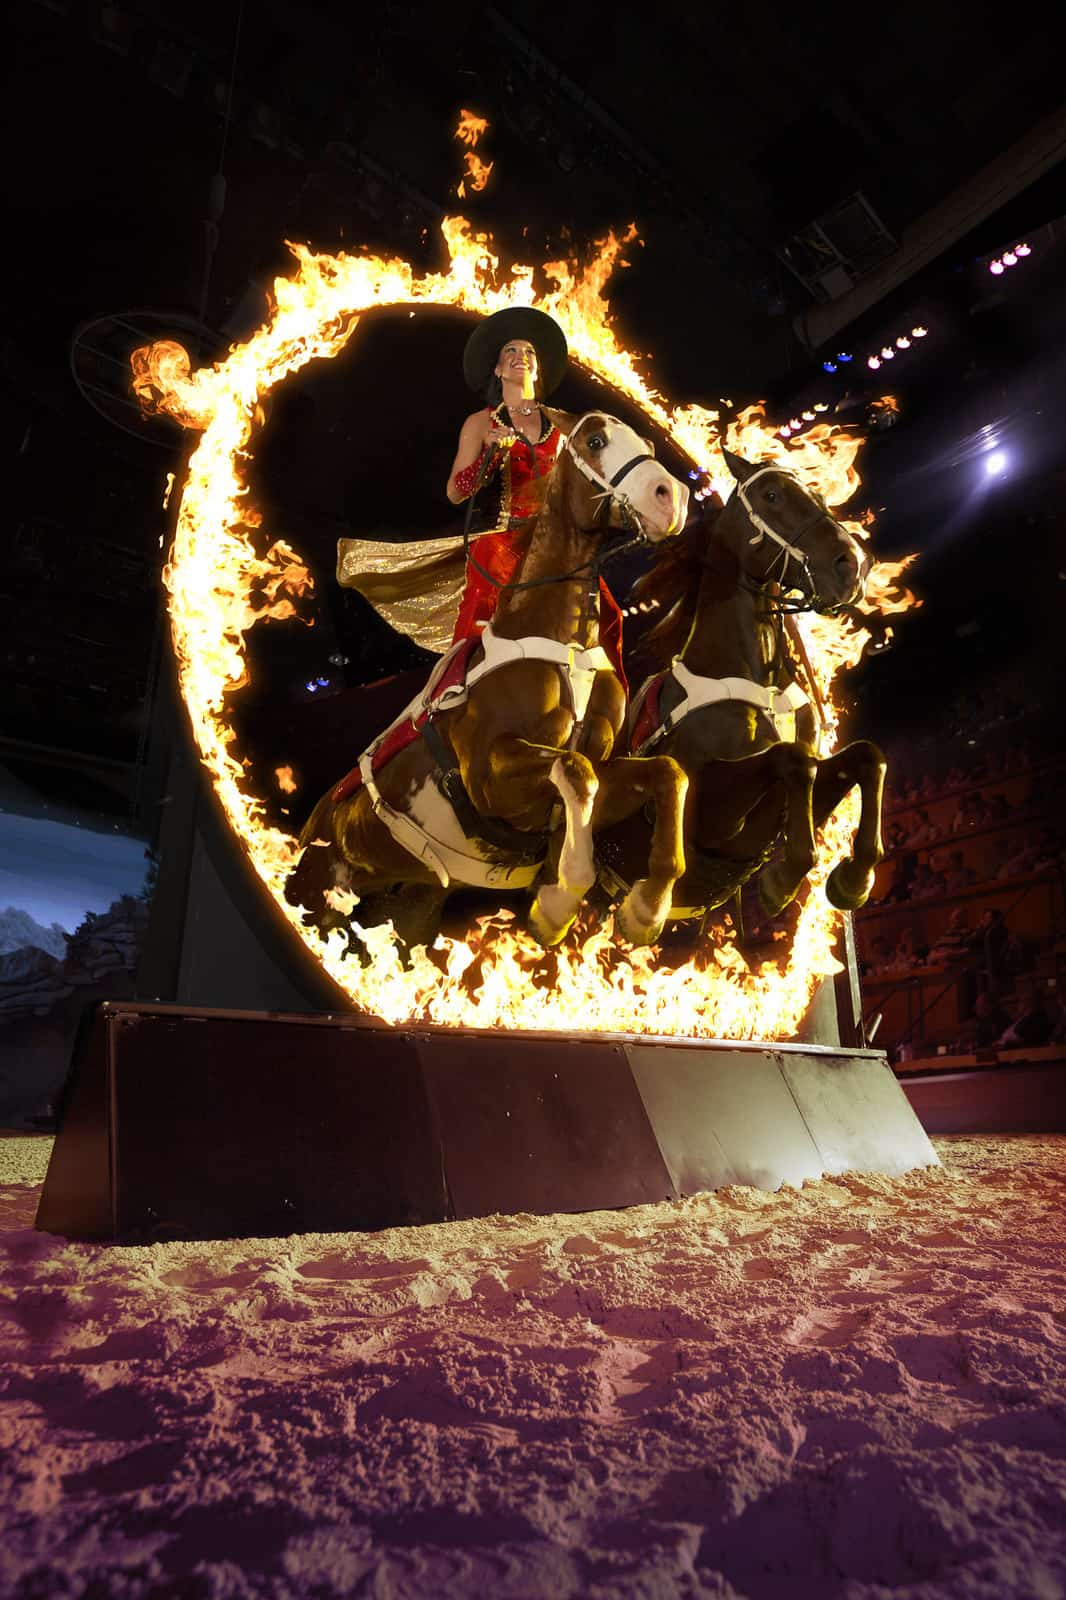 women on two horses jumping through a ring of fire